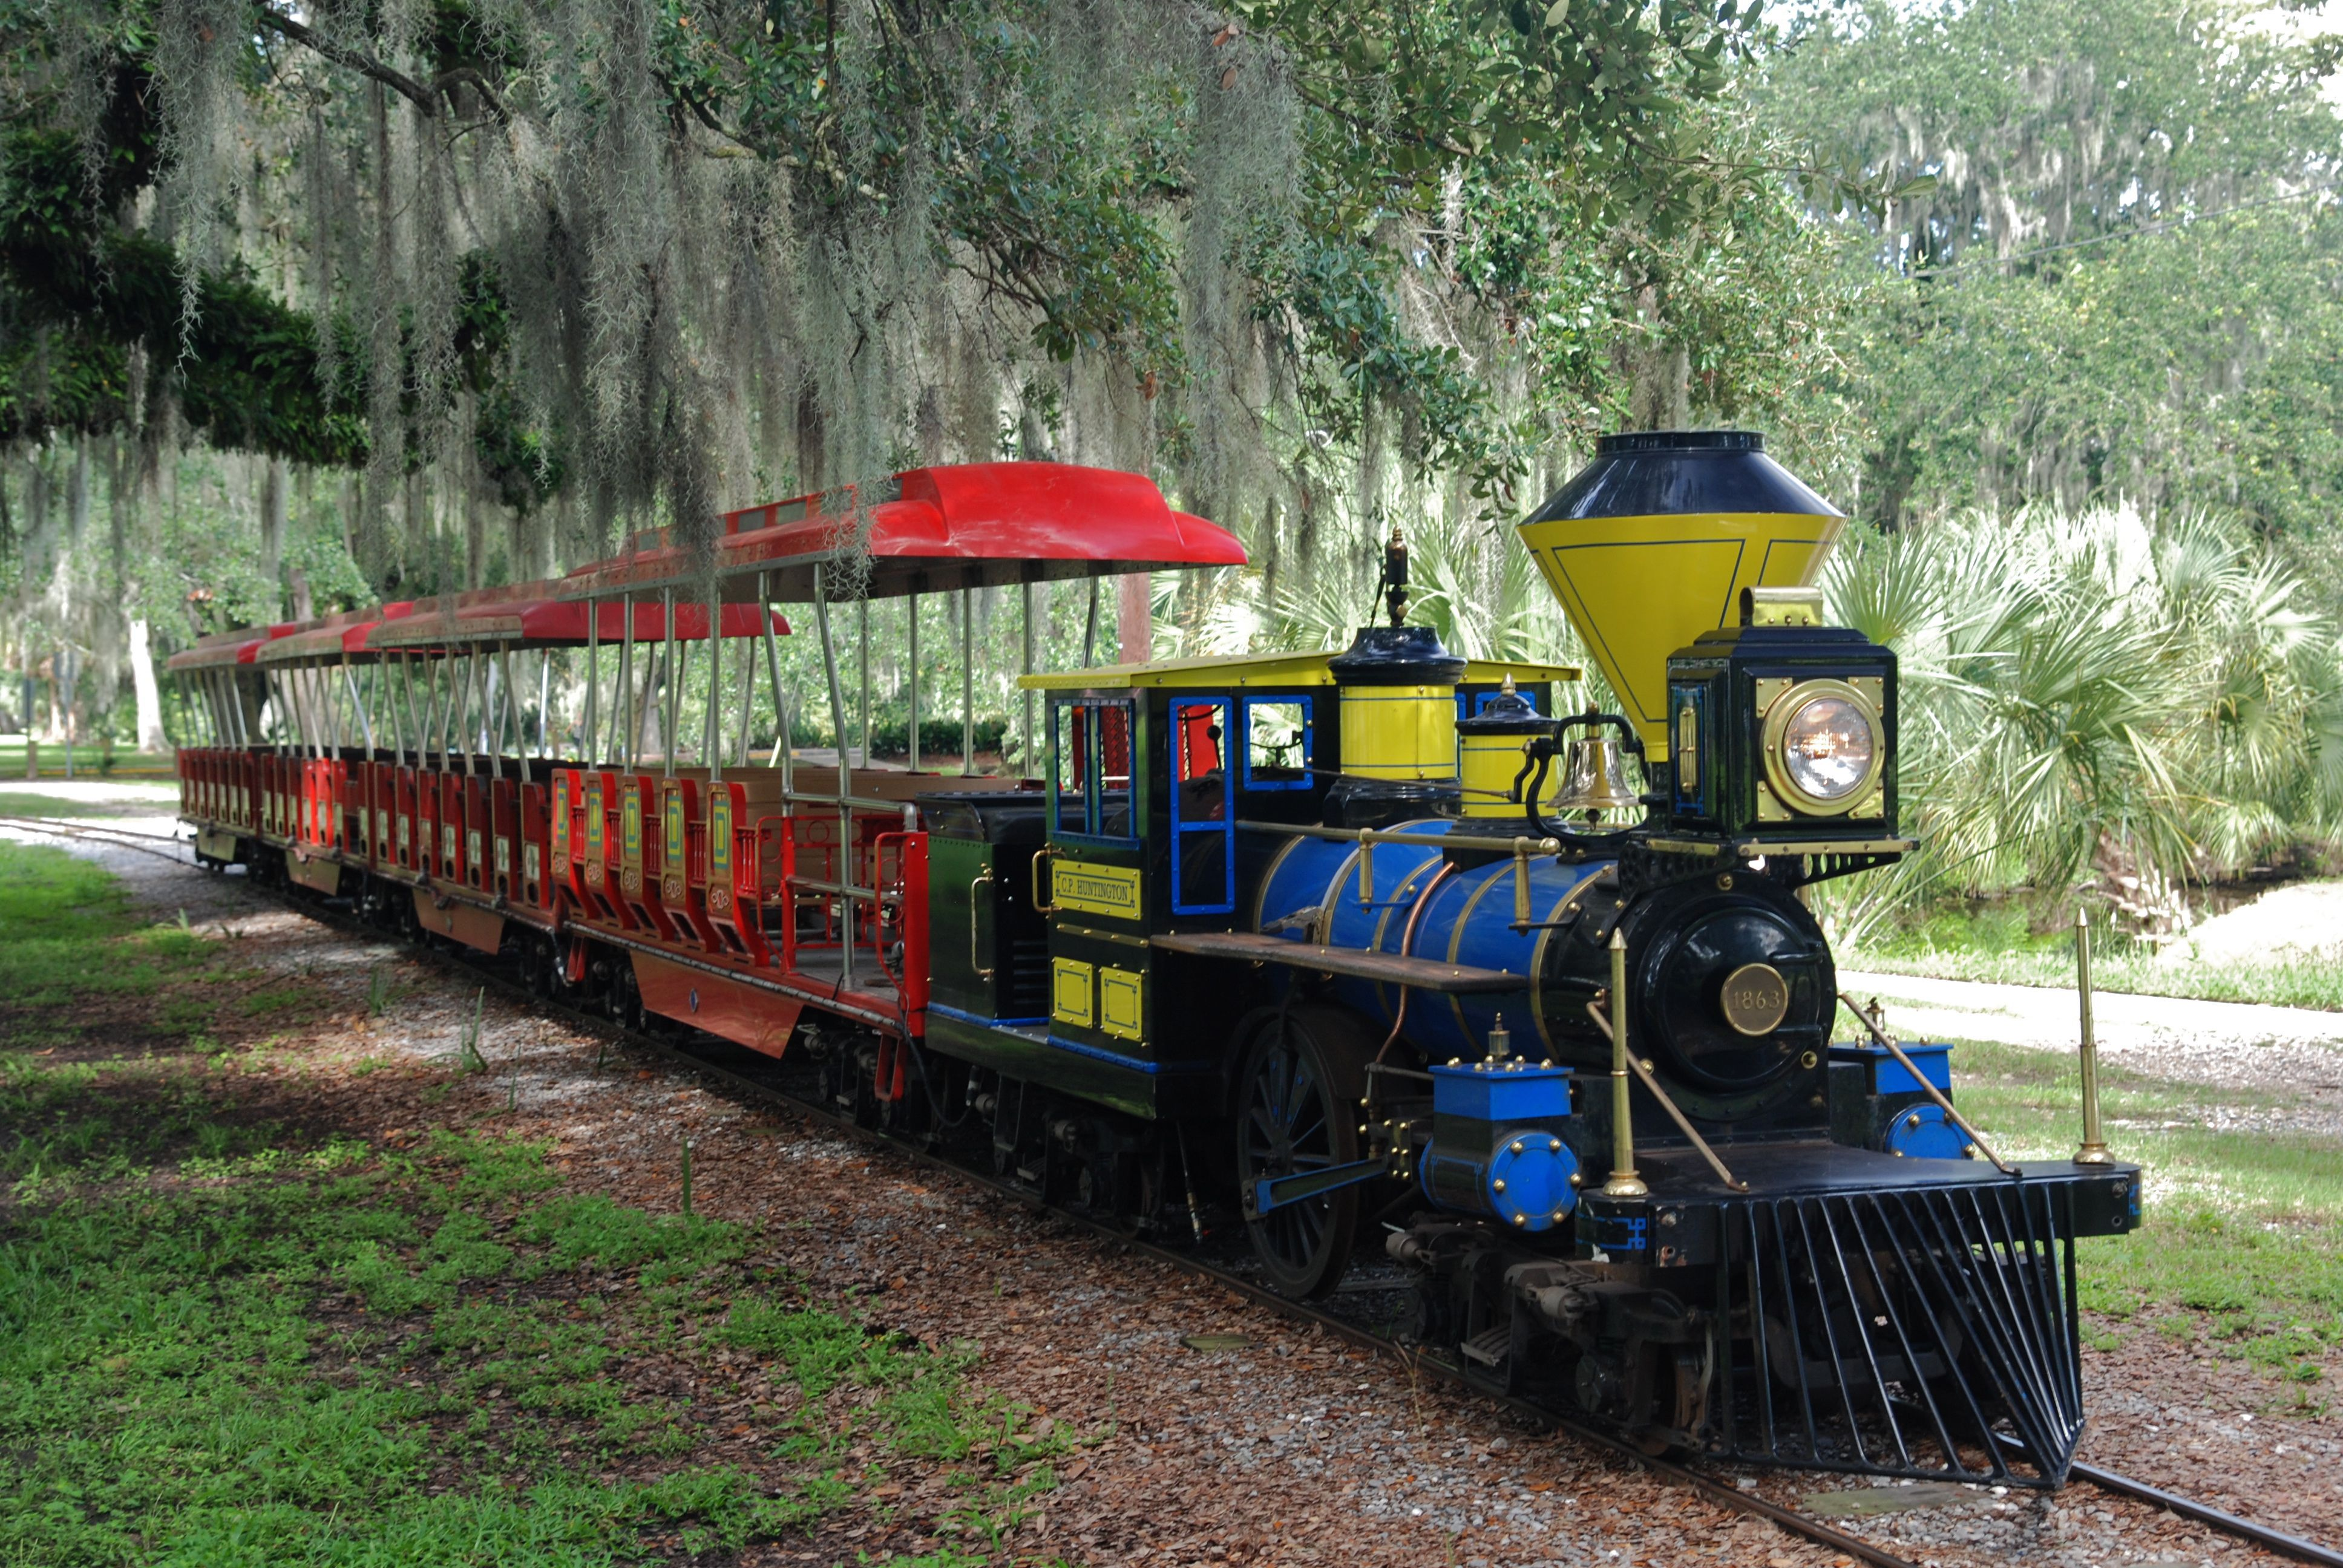 Carousel Gardens Amusement Park has mini trains! Great for any day ending in a 'Y' as well as birthday parties! http://www.neworleanscitypark.com/in-the-park/carousel-gardens